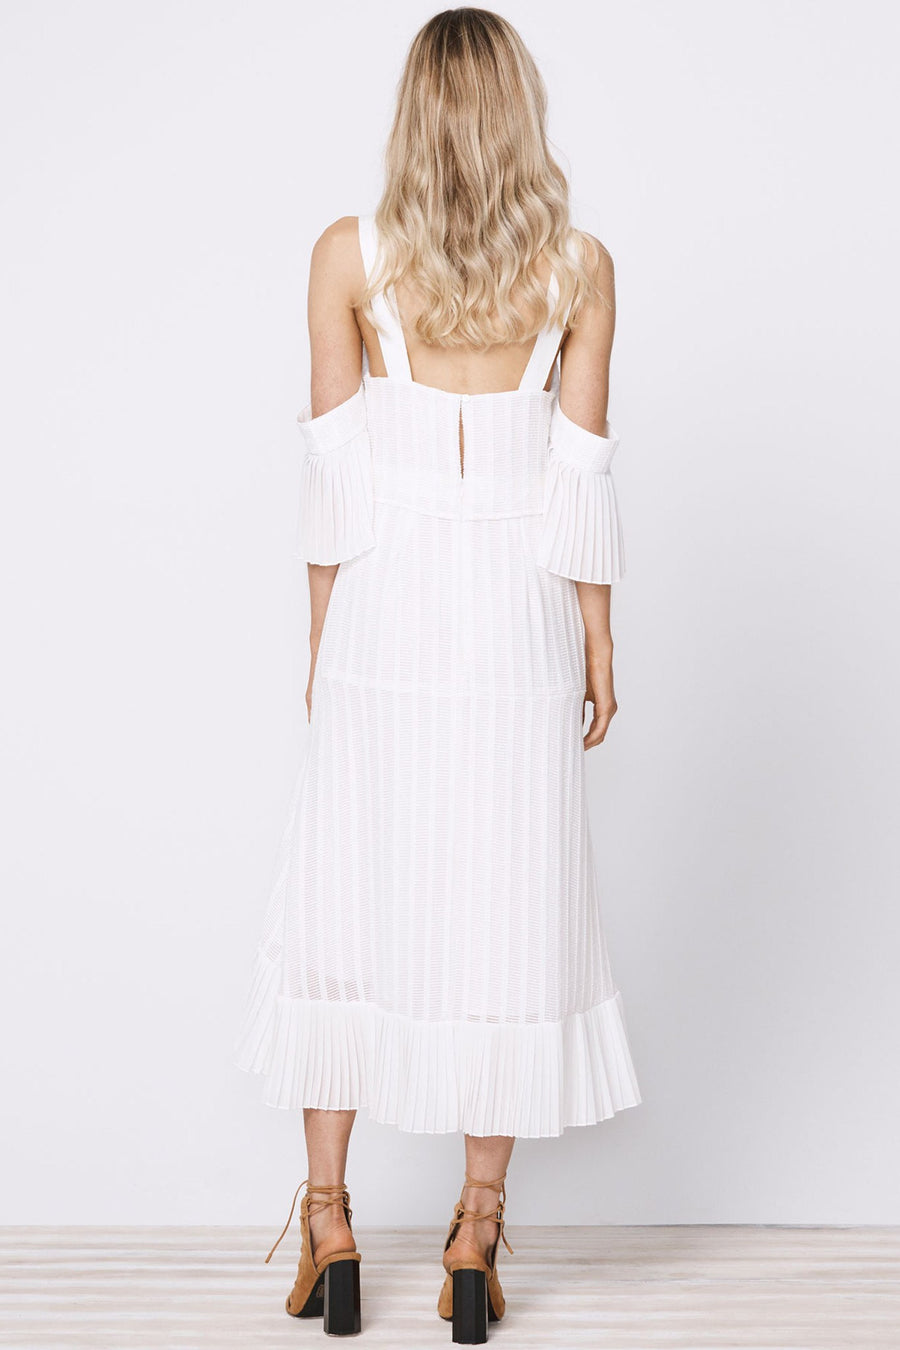 georgie-girl-midi-dress-by-stevie-may